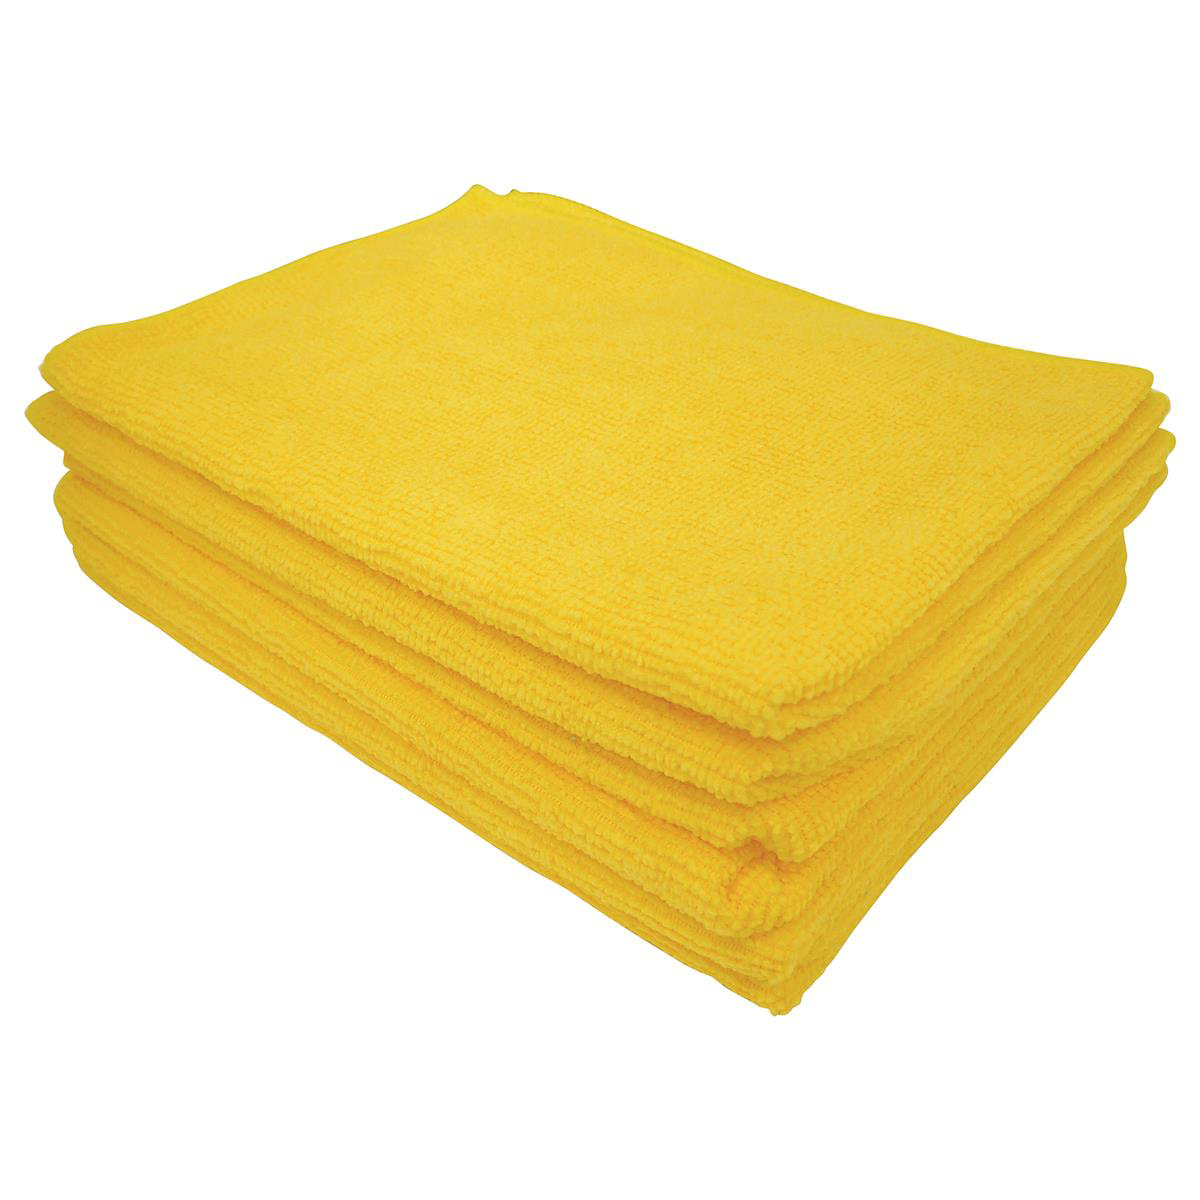 Cloths / Dusters / Scourers / Sponges 5 Star Facilities Microfibre Cleaning Cloth Colour-coded Multi-surface Yellow Pack 6